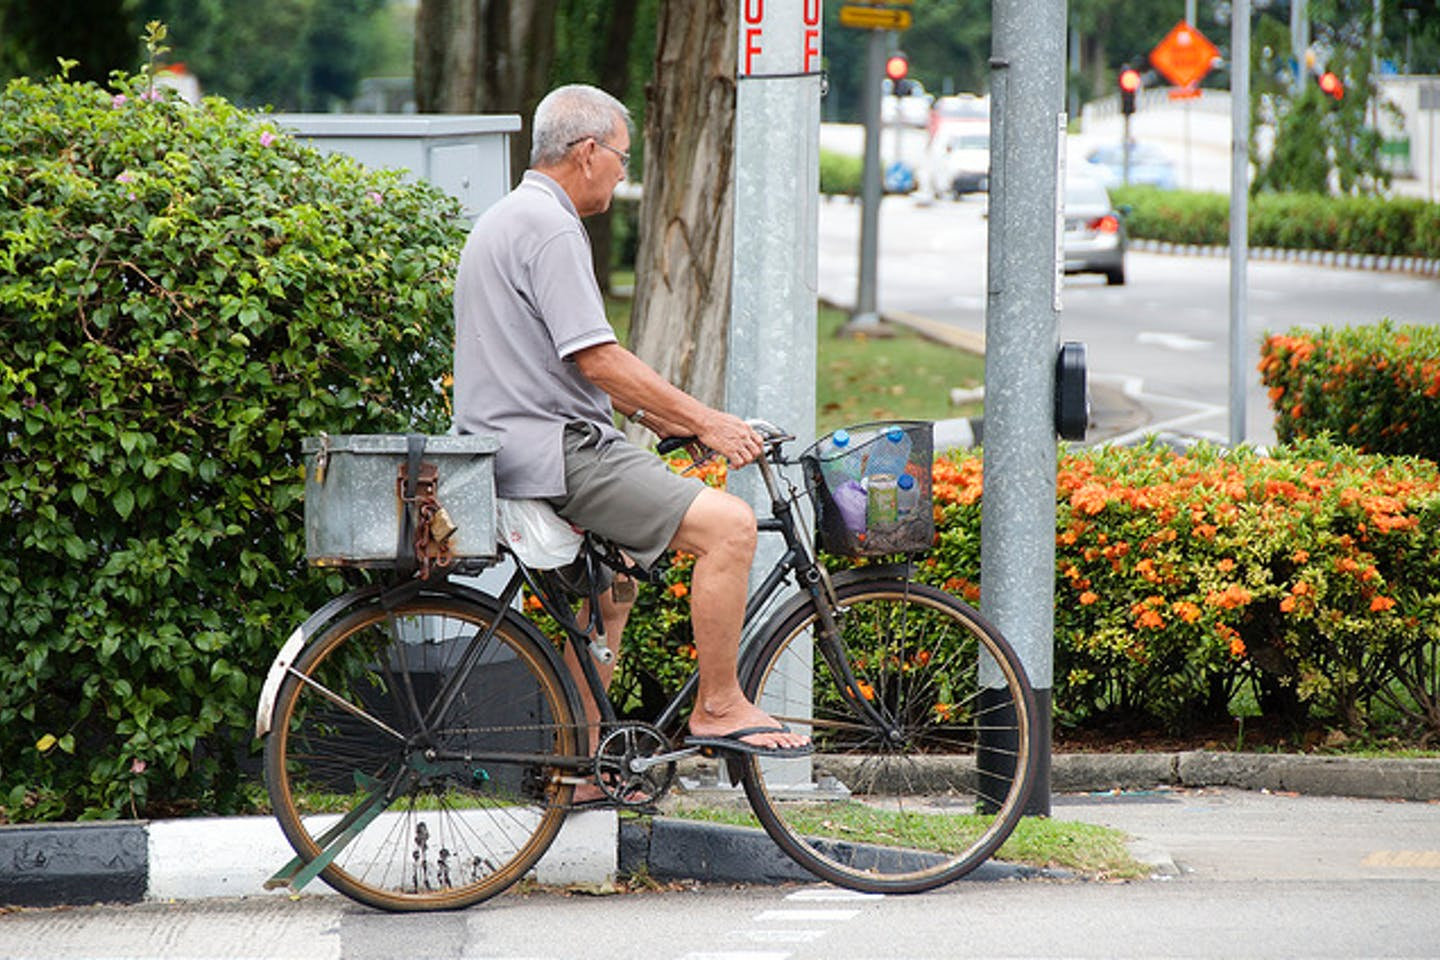 man cycles in Singapore